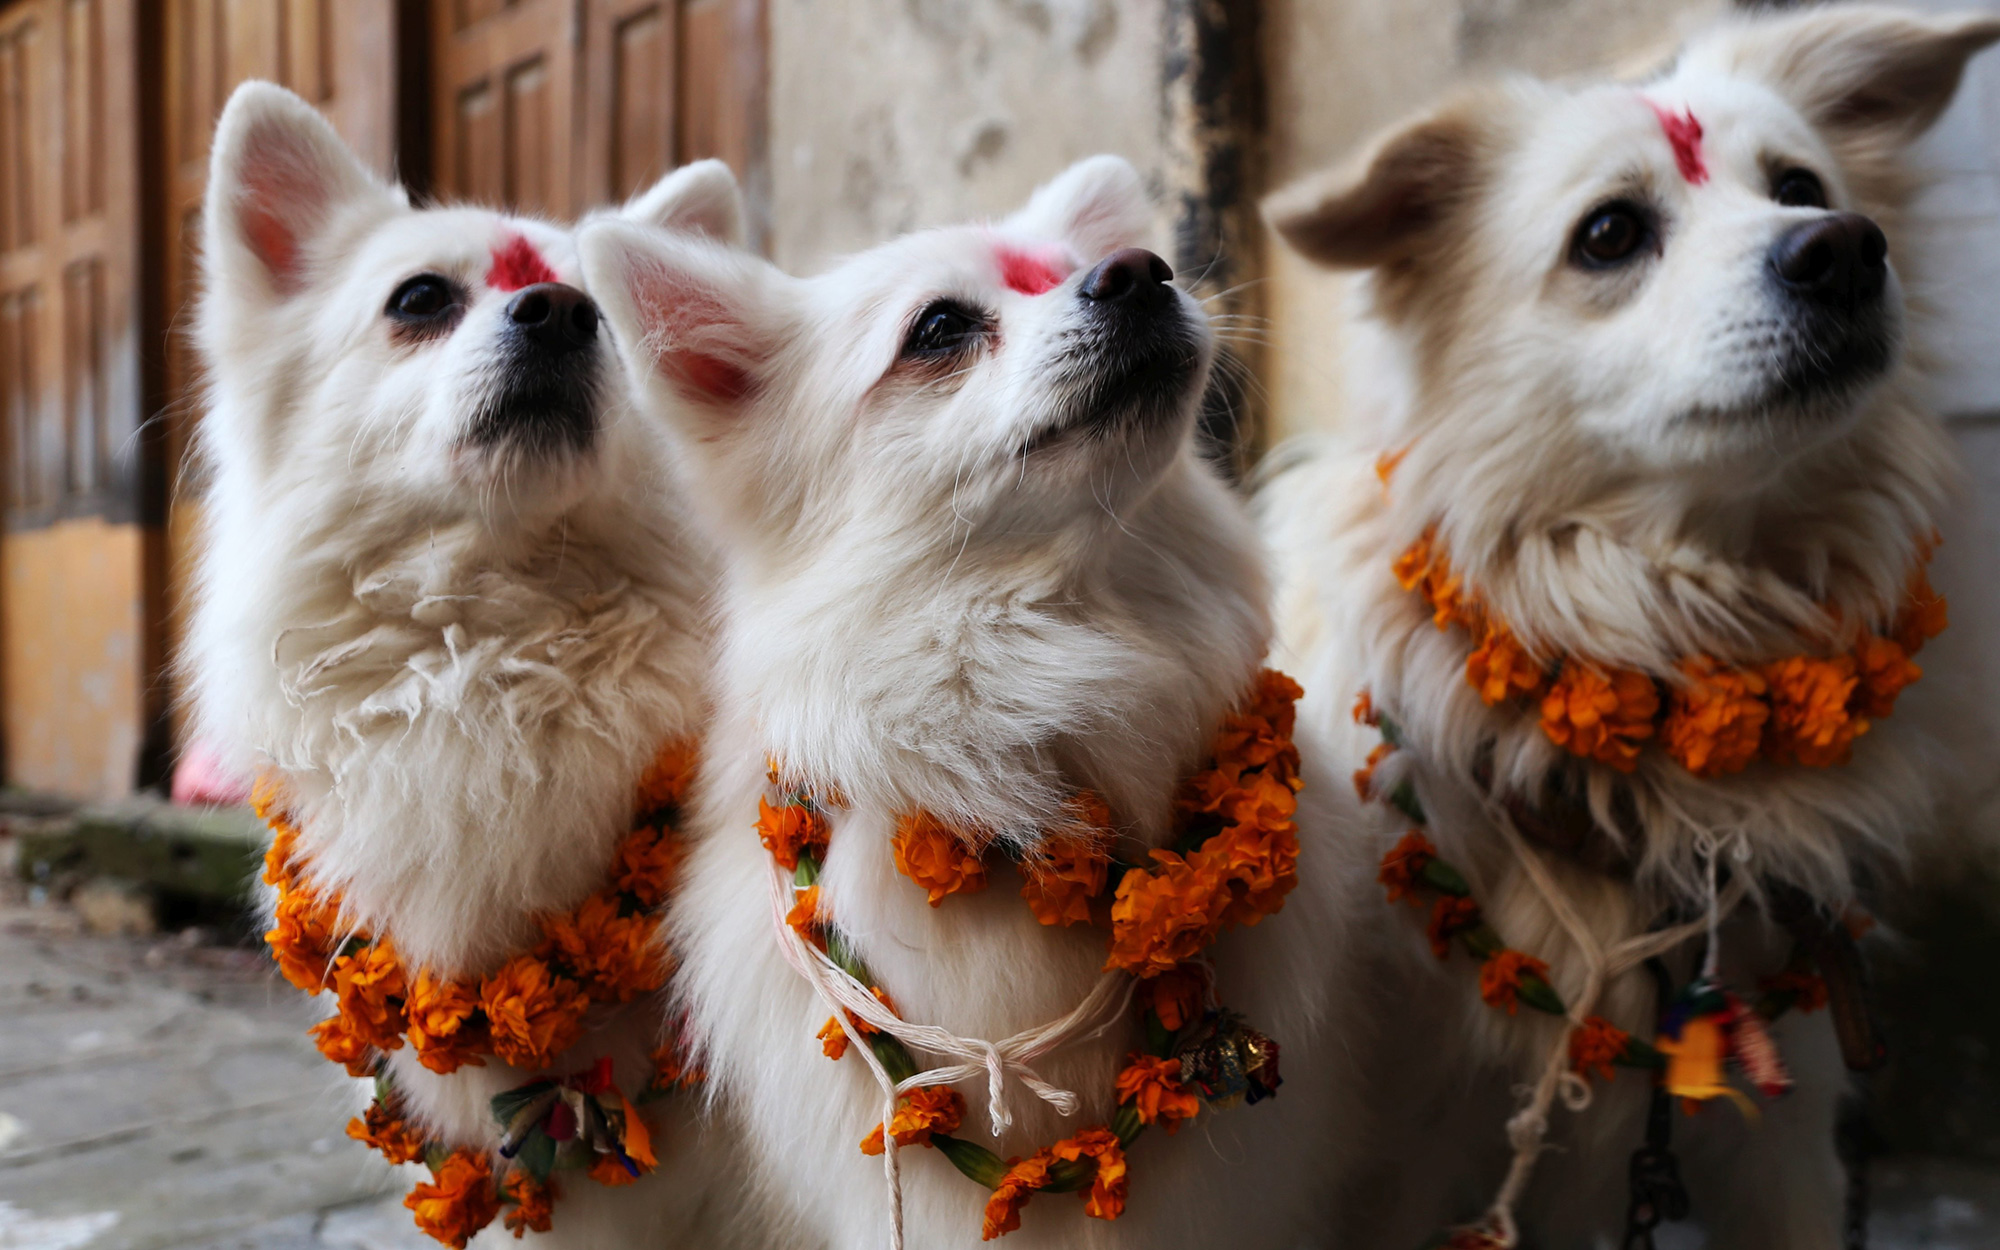 Nepal Celebrates Dogs During Annual Tihar Celebration